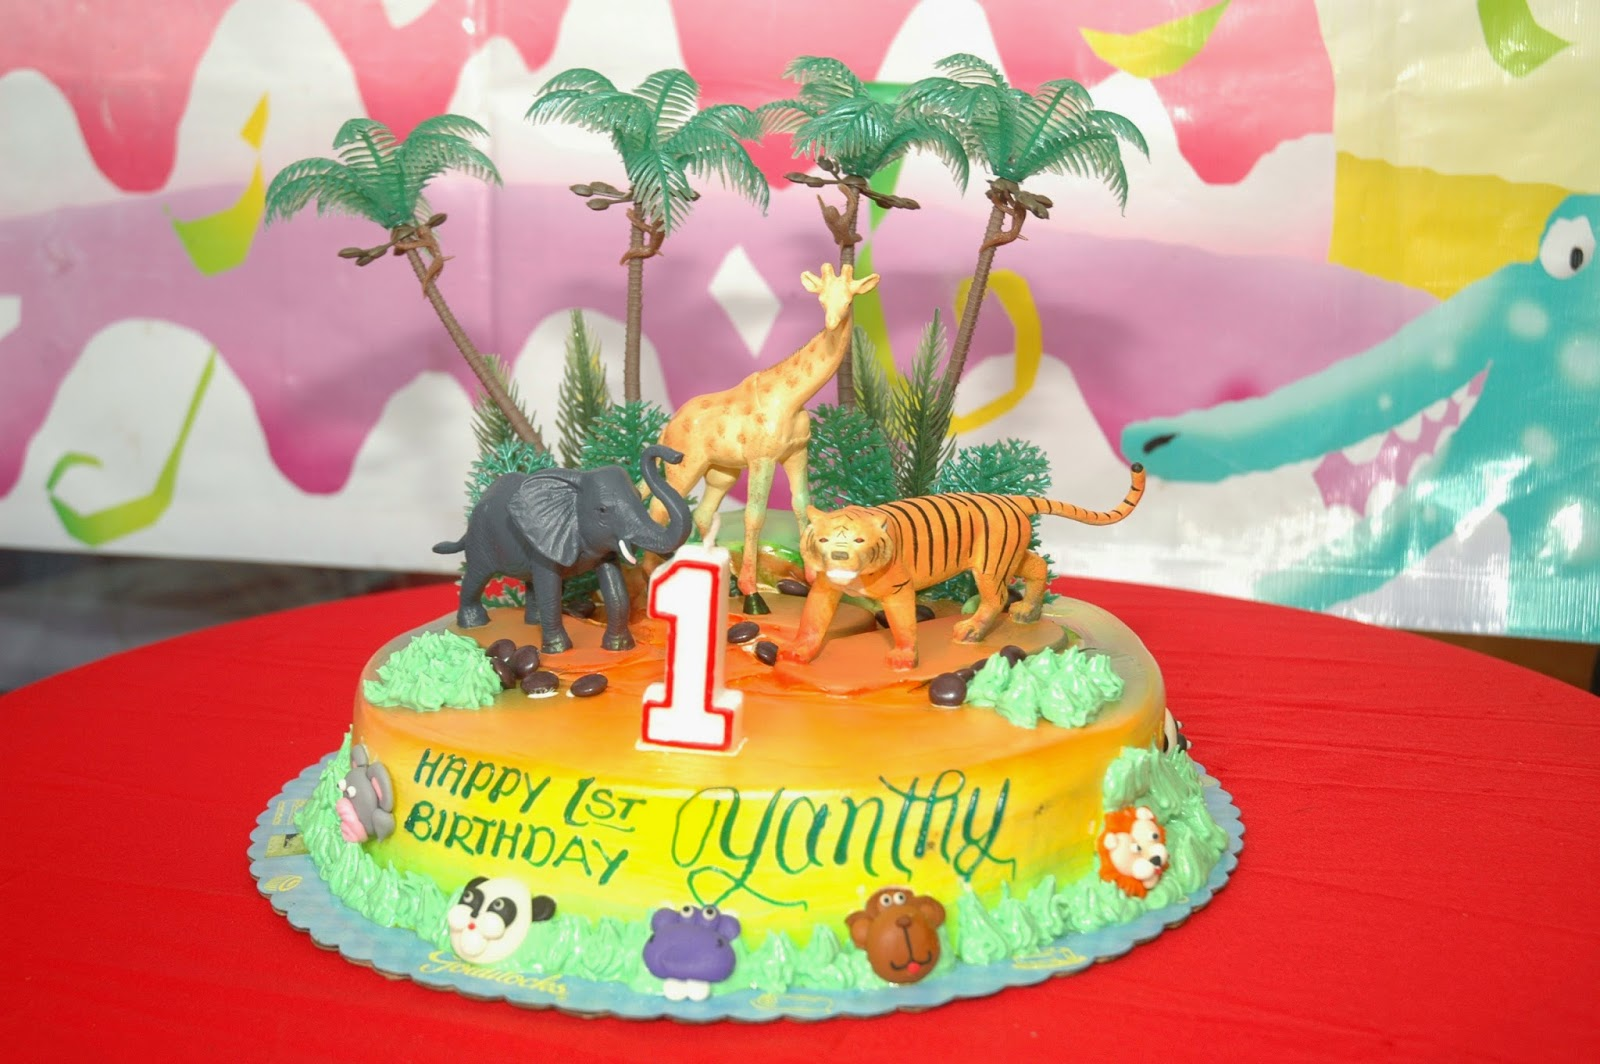 Goldilocks Cake Design For 60th Birthday : goldilocks personalized birthday cakes - 28 images ...